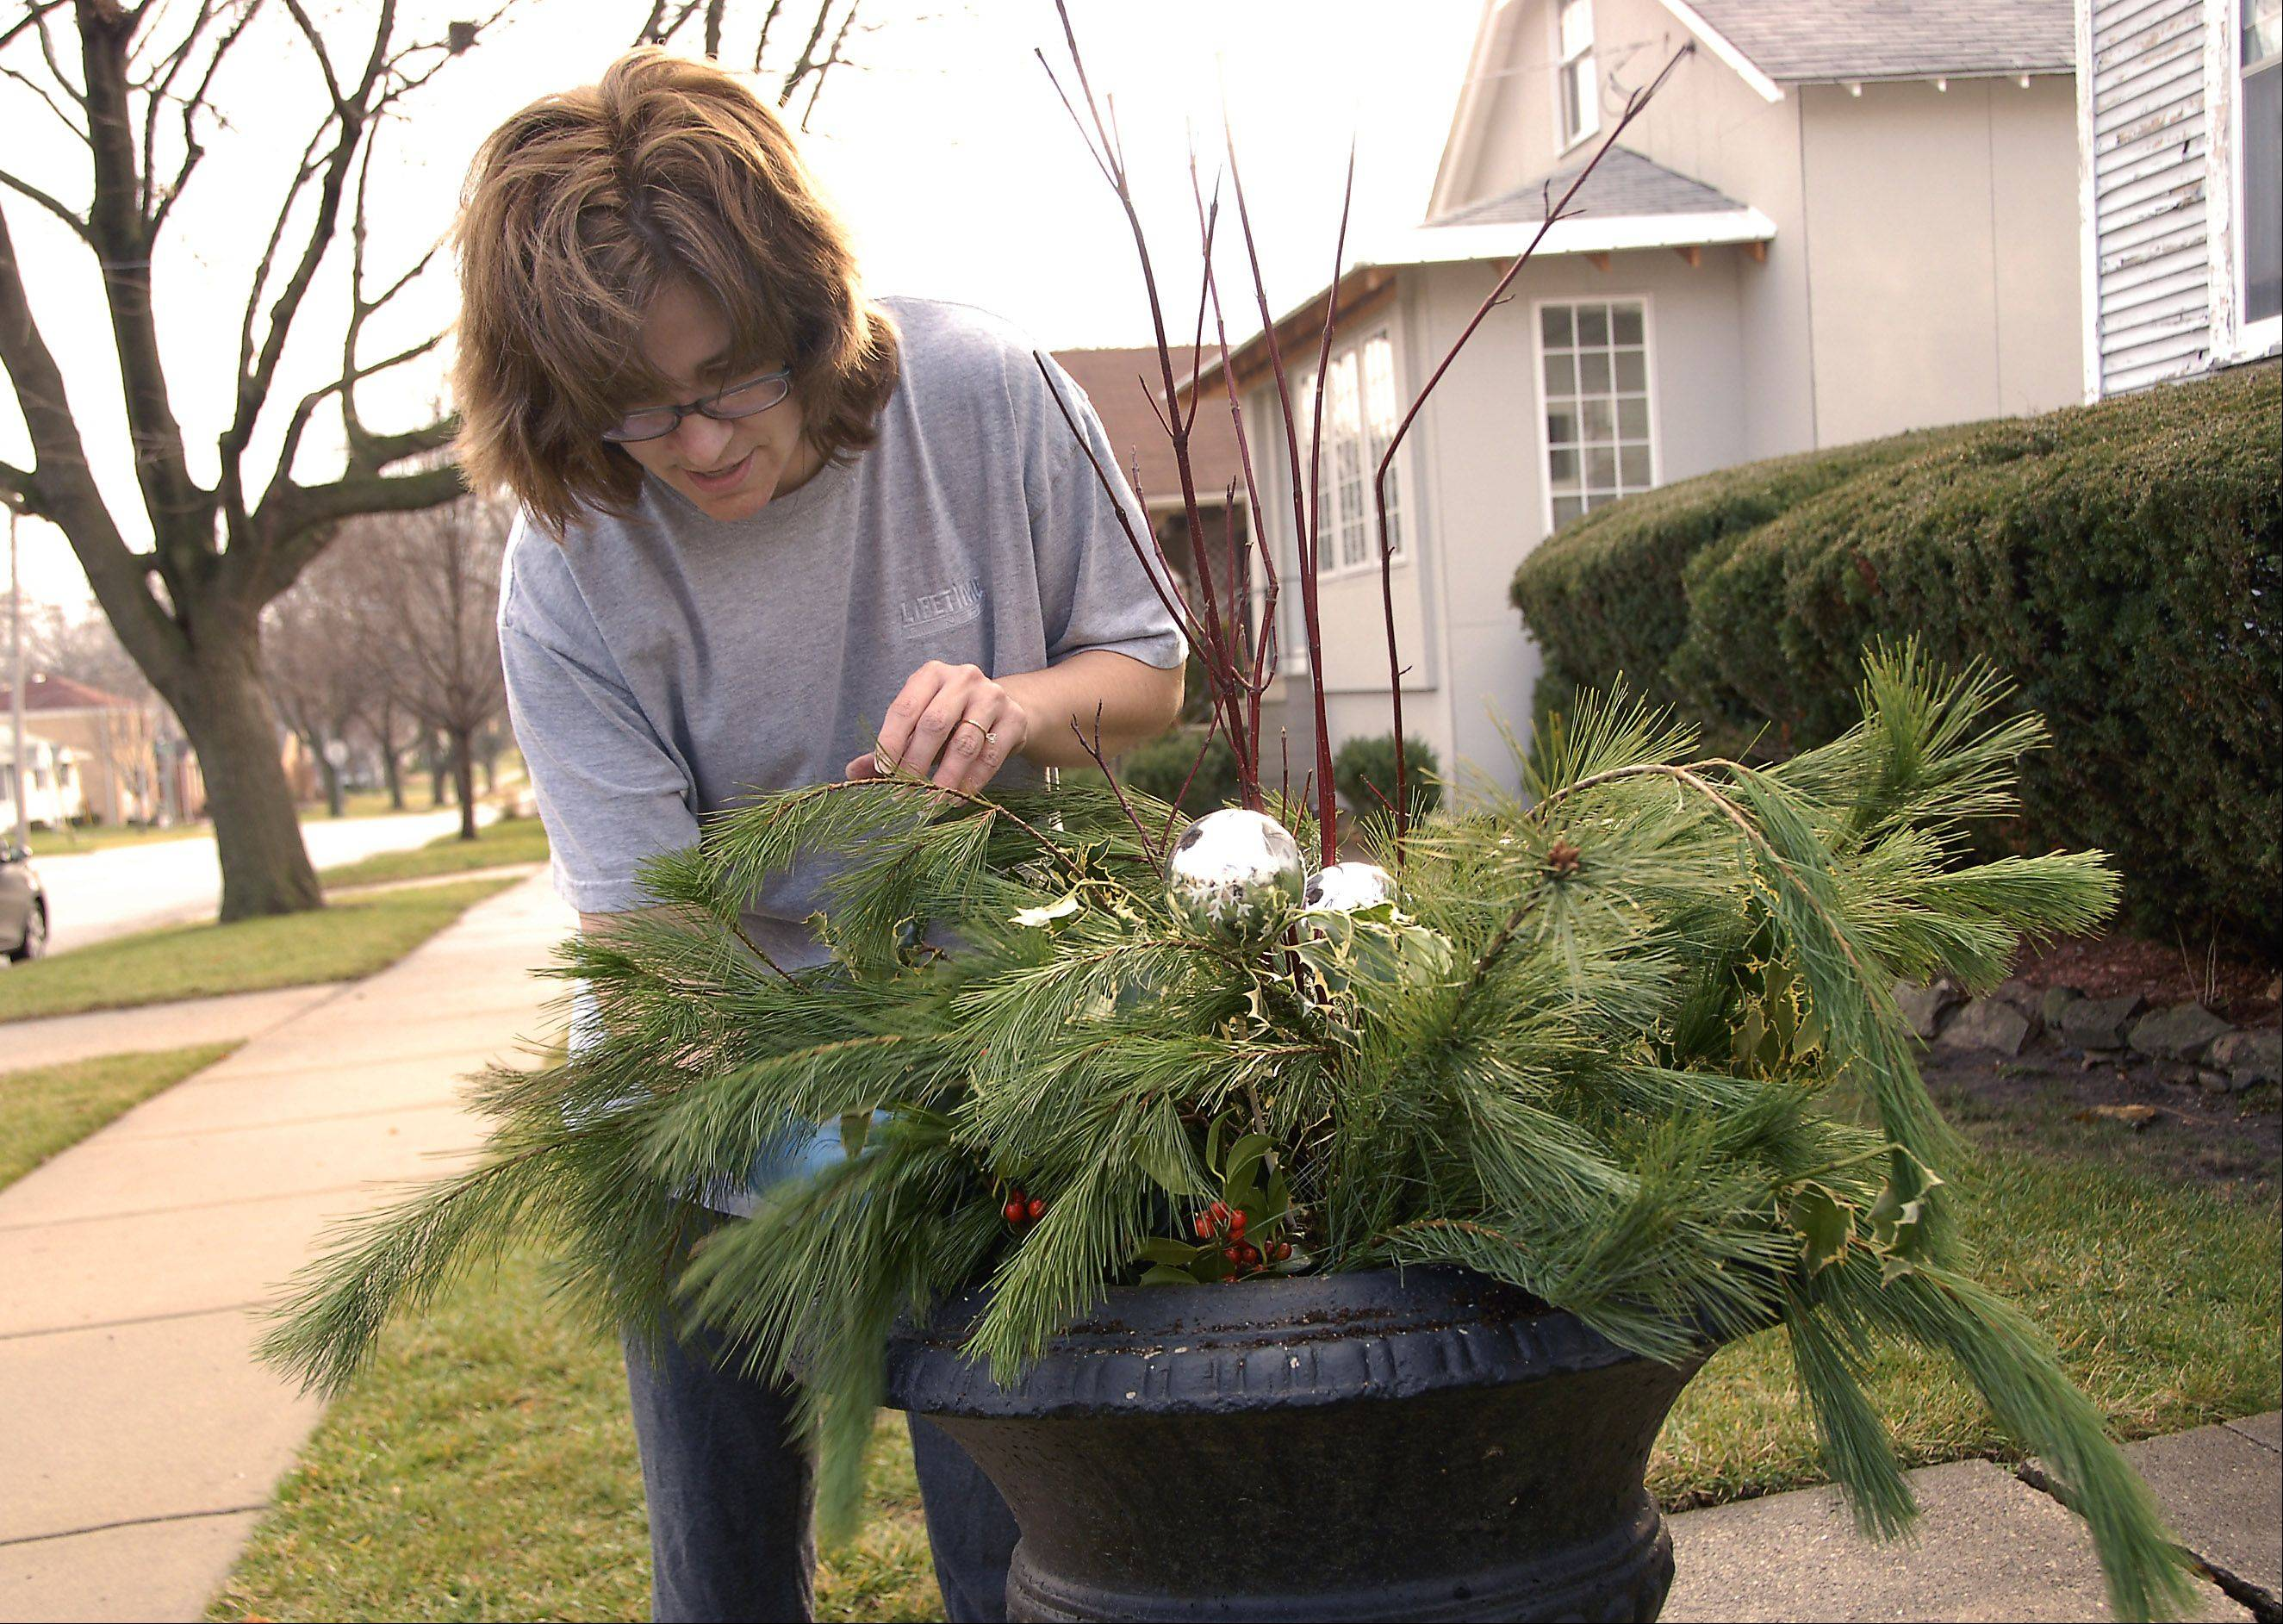 Monica Utyro of Arlington Heights works on her Christmas arrangement in short sleeves on an unseasonably warm December this week. The temperature in front Utyro's home on Vail Avenue was 67 degrees.